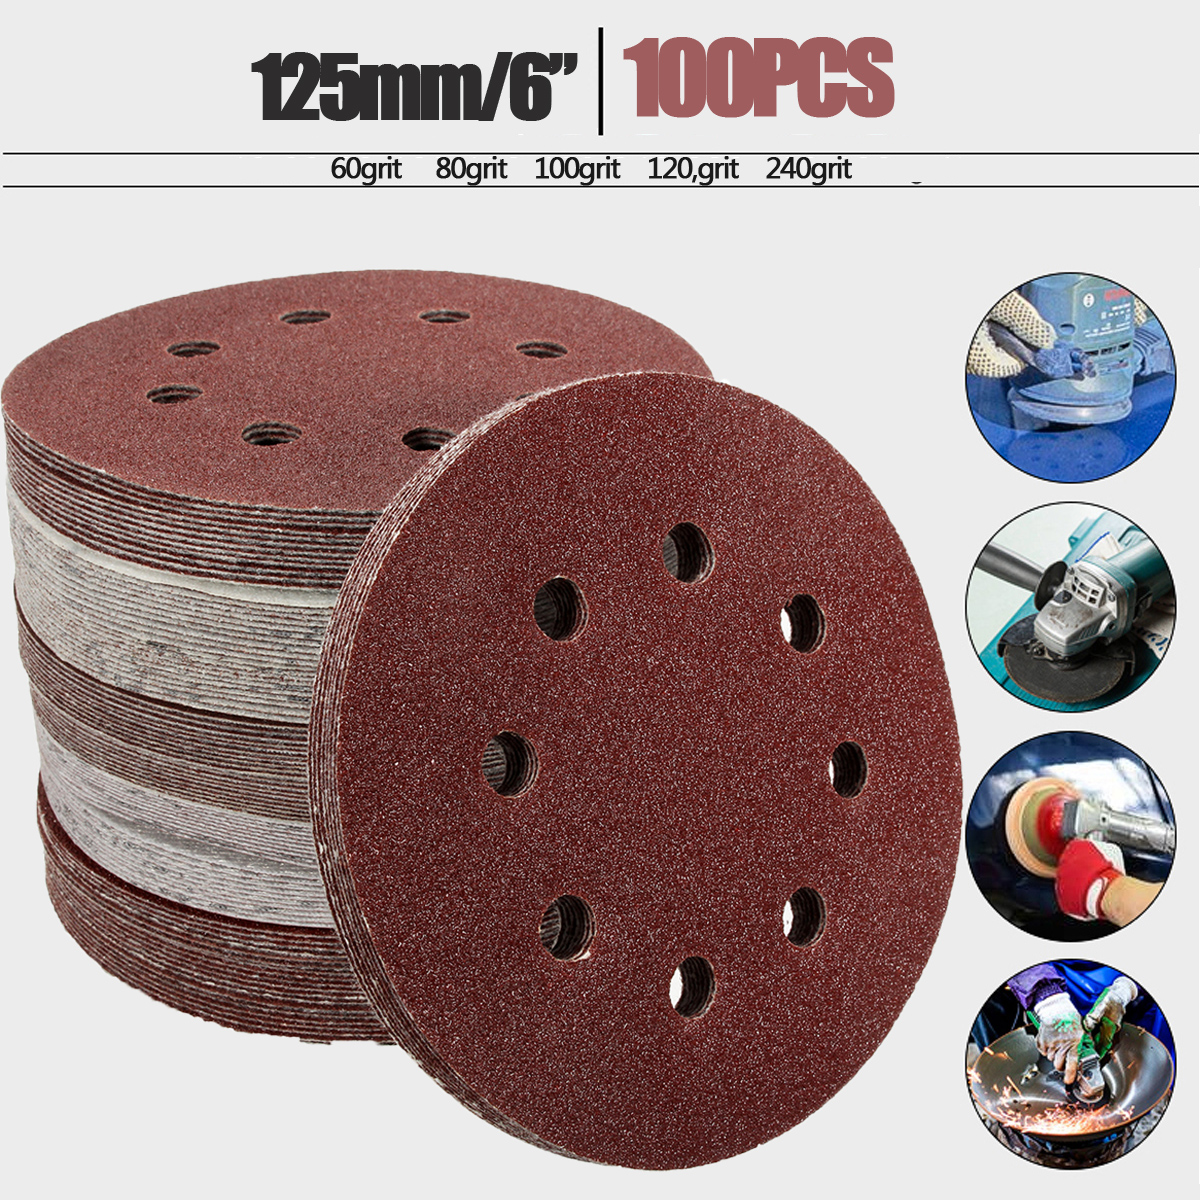 100pcs 125mm/5'' Orbit Sanding Polishing Sheet Sandpaper Round Shape Sander Discs Mixed 60/80/100/120/240 Grit Polish Pad